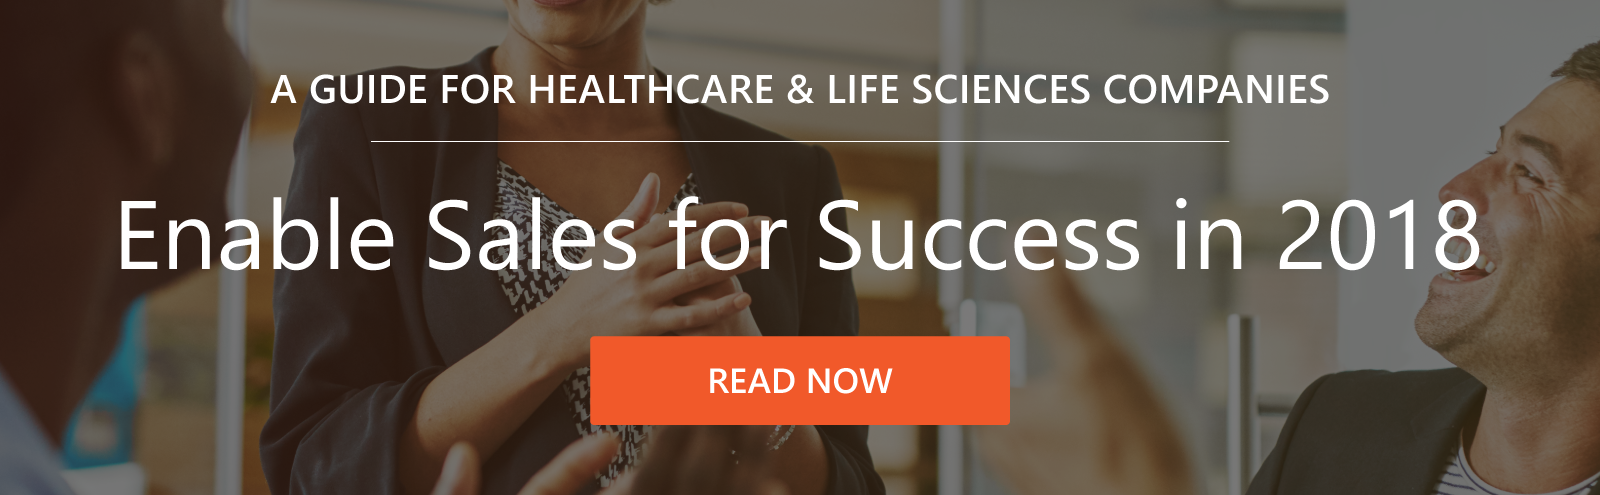 sales guide for healthcare and life sciences